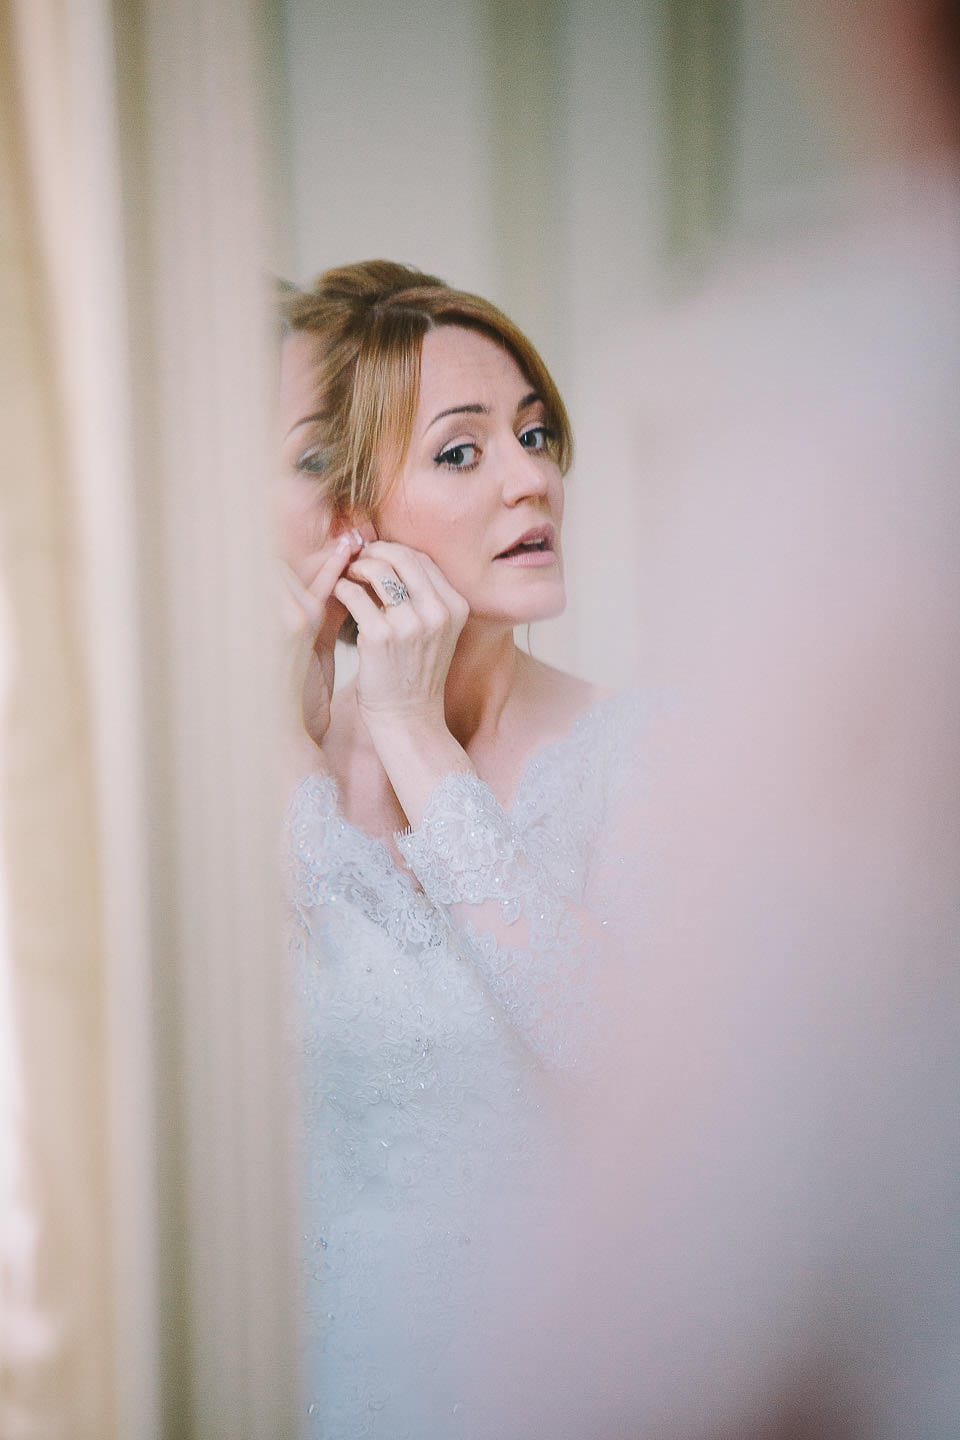 Bride putting on her earrings in the mirror at Bath Spa Hotel